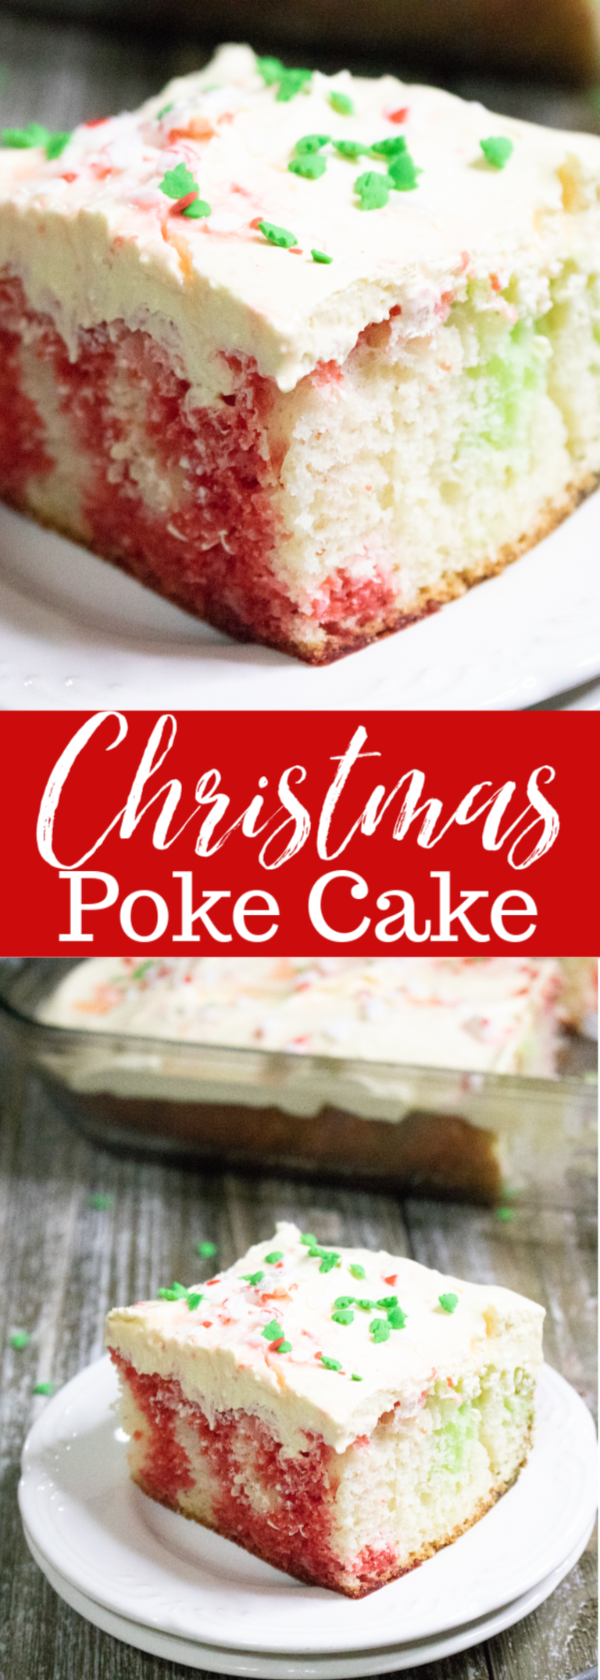 Festive and delicious Christmas Poke Cake. Delight your friends and family with this beautiful and yummy cake. #christmas #christmascake #recipes #holiday #desserts #easy #red #green #mooreorlesscooking #holidaydesserts